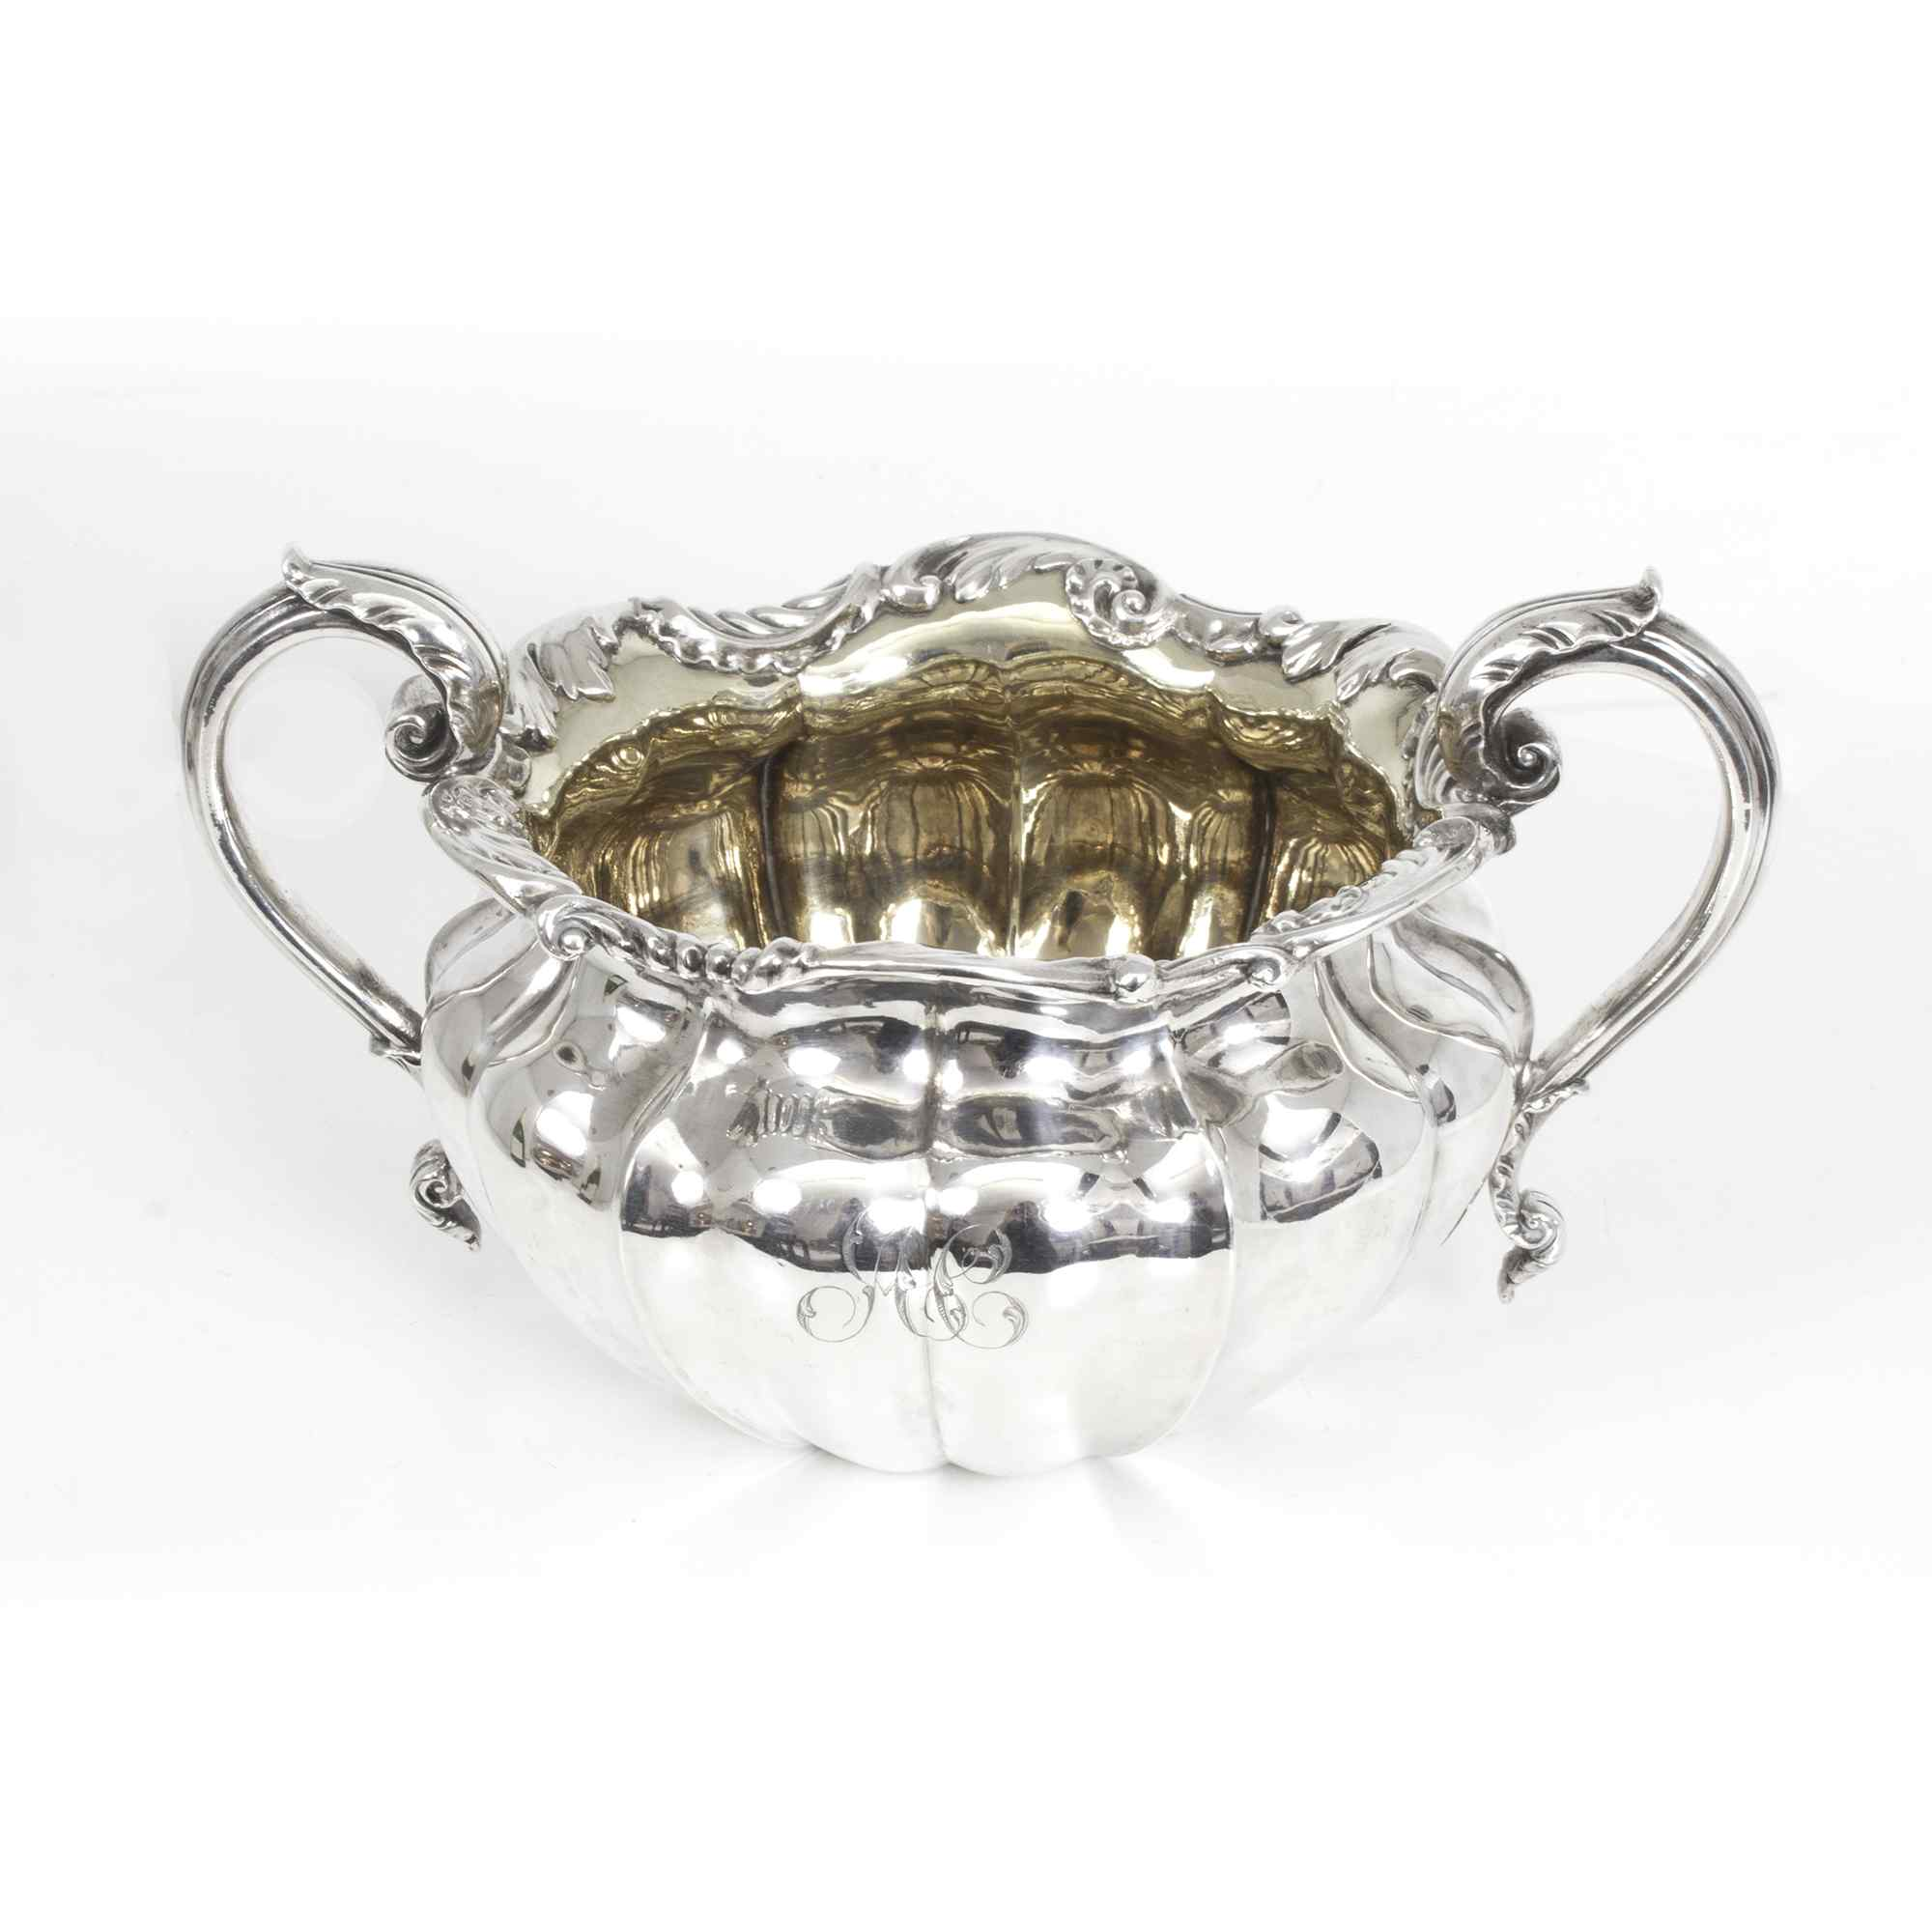 Zuccheriera antica William IV in argento sterling di Paul St